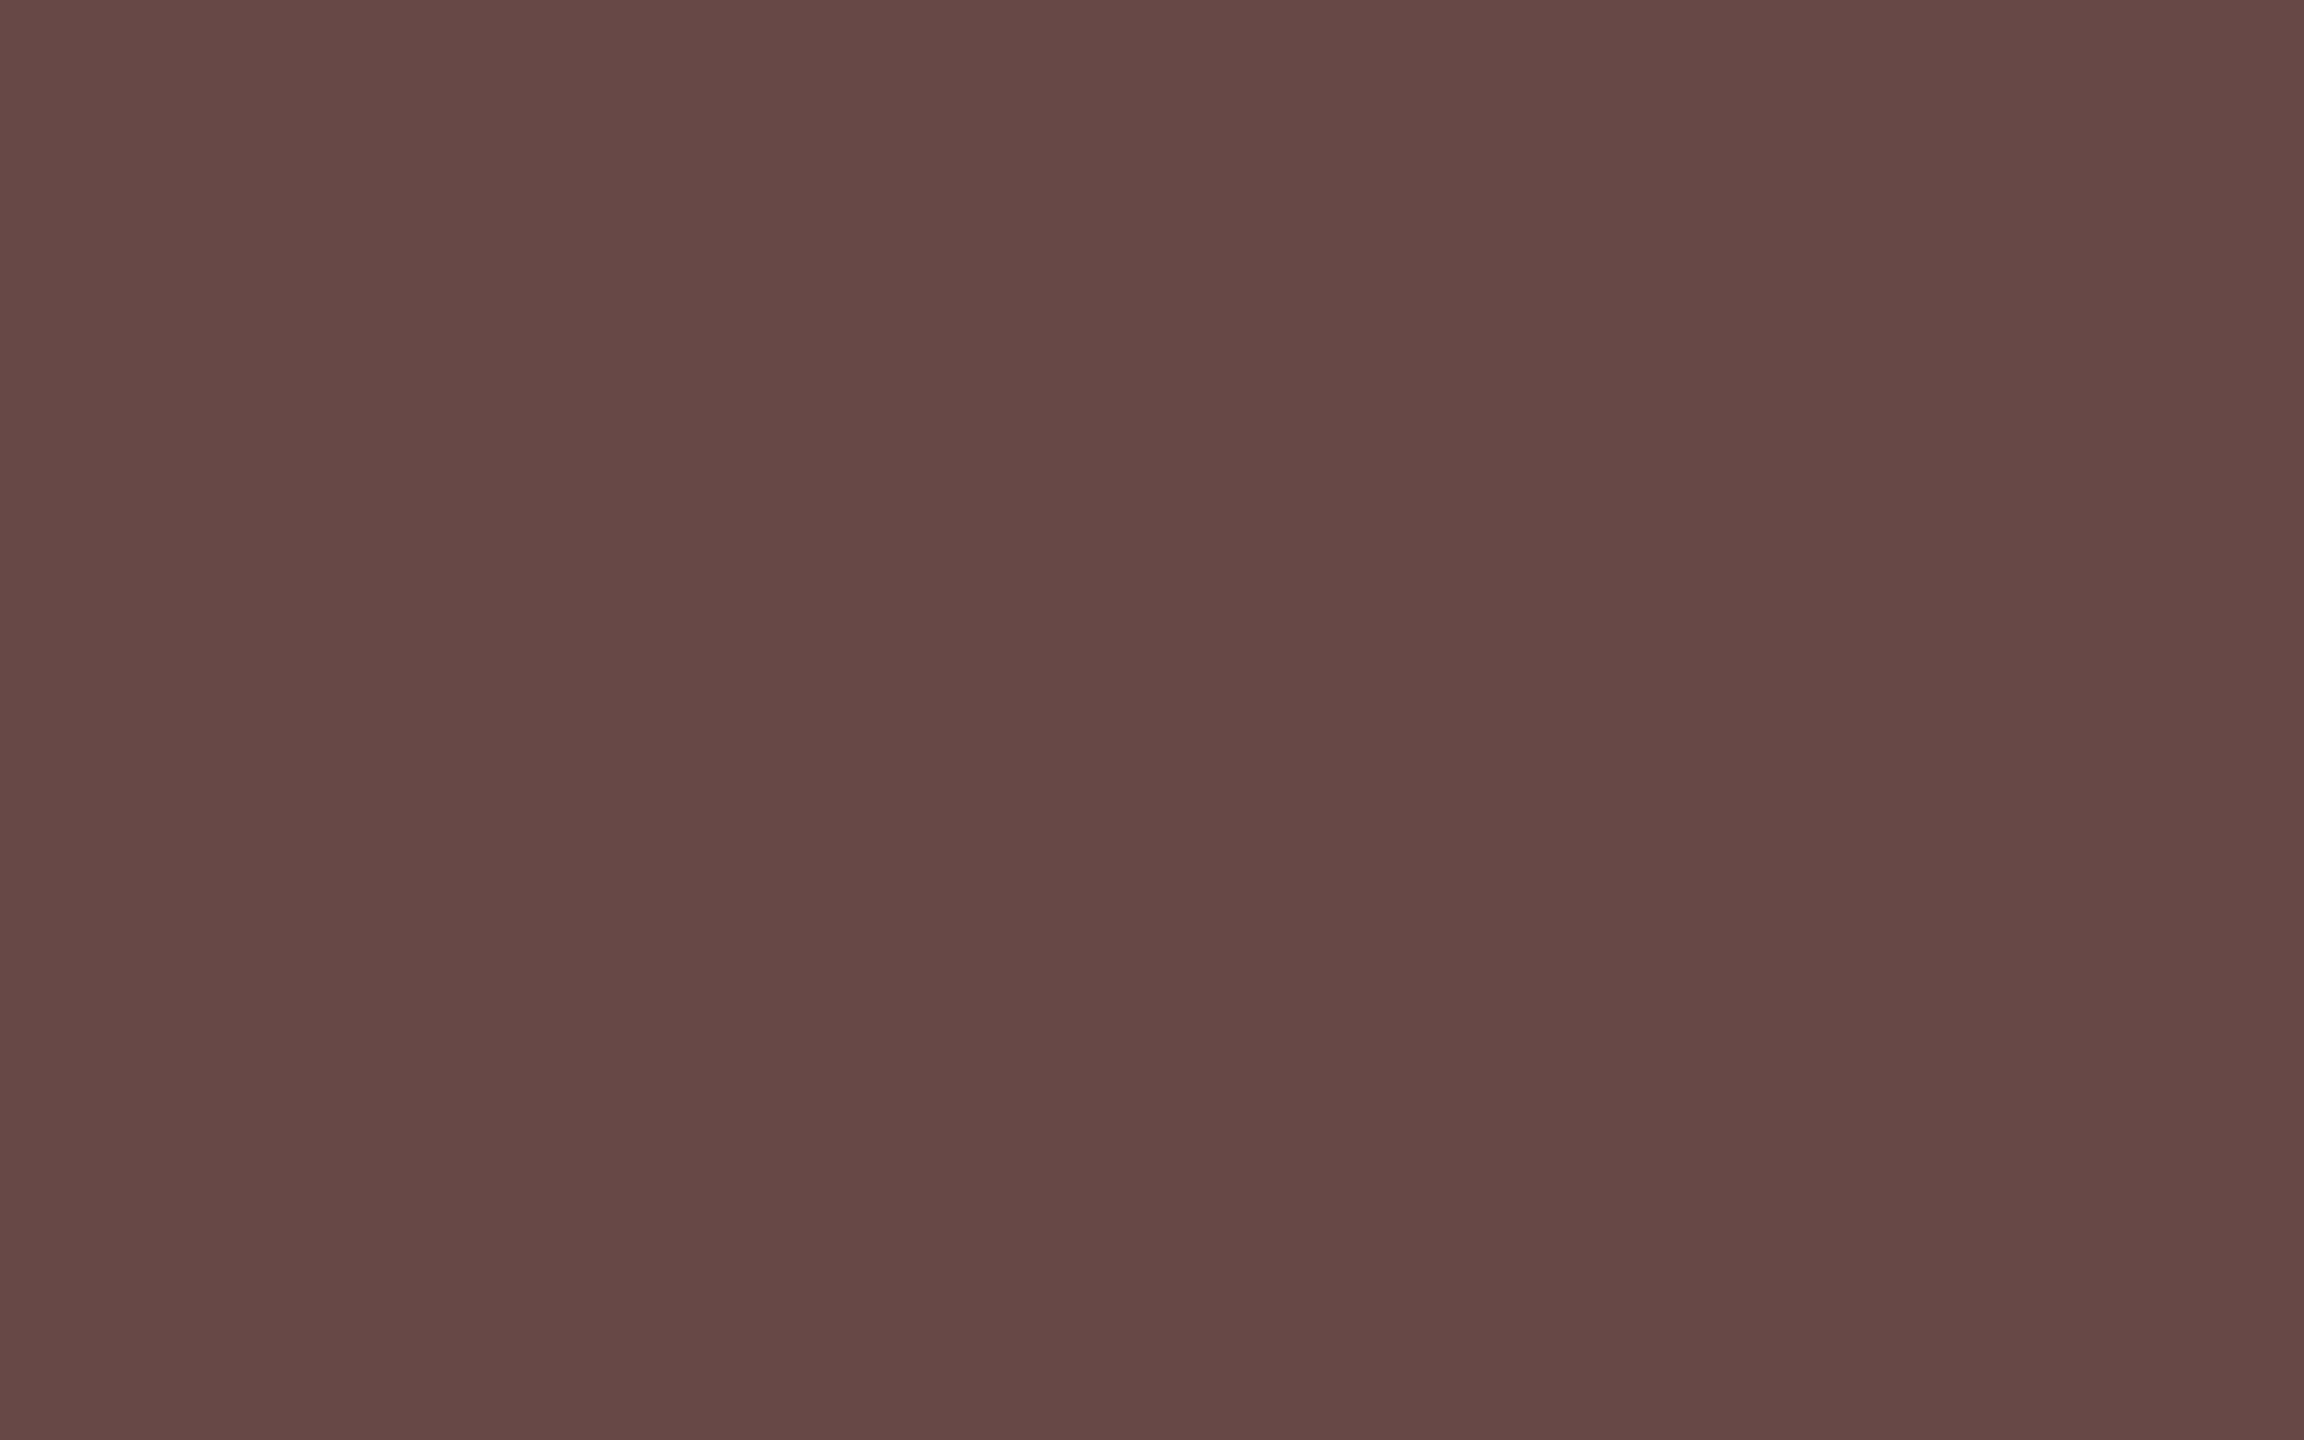 2304x1440 Rose Ebony Solid Color Background